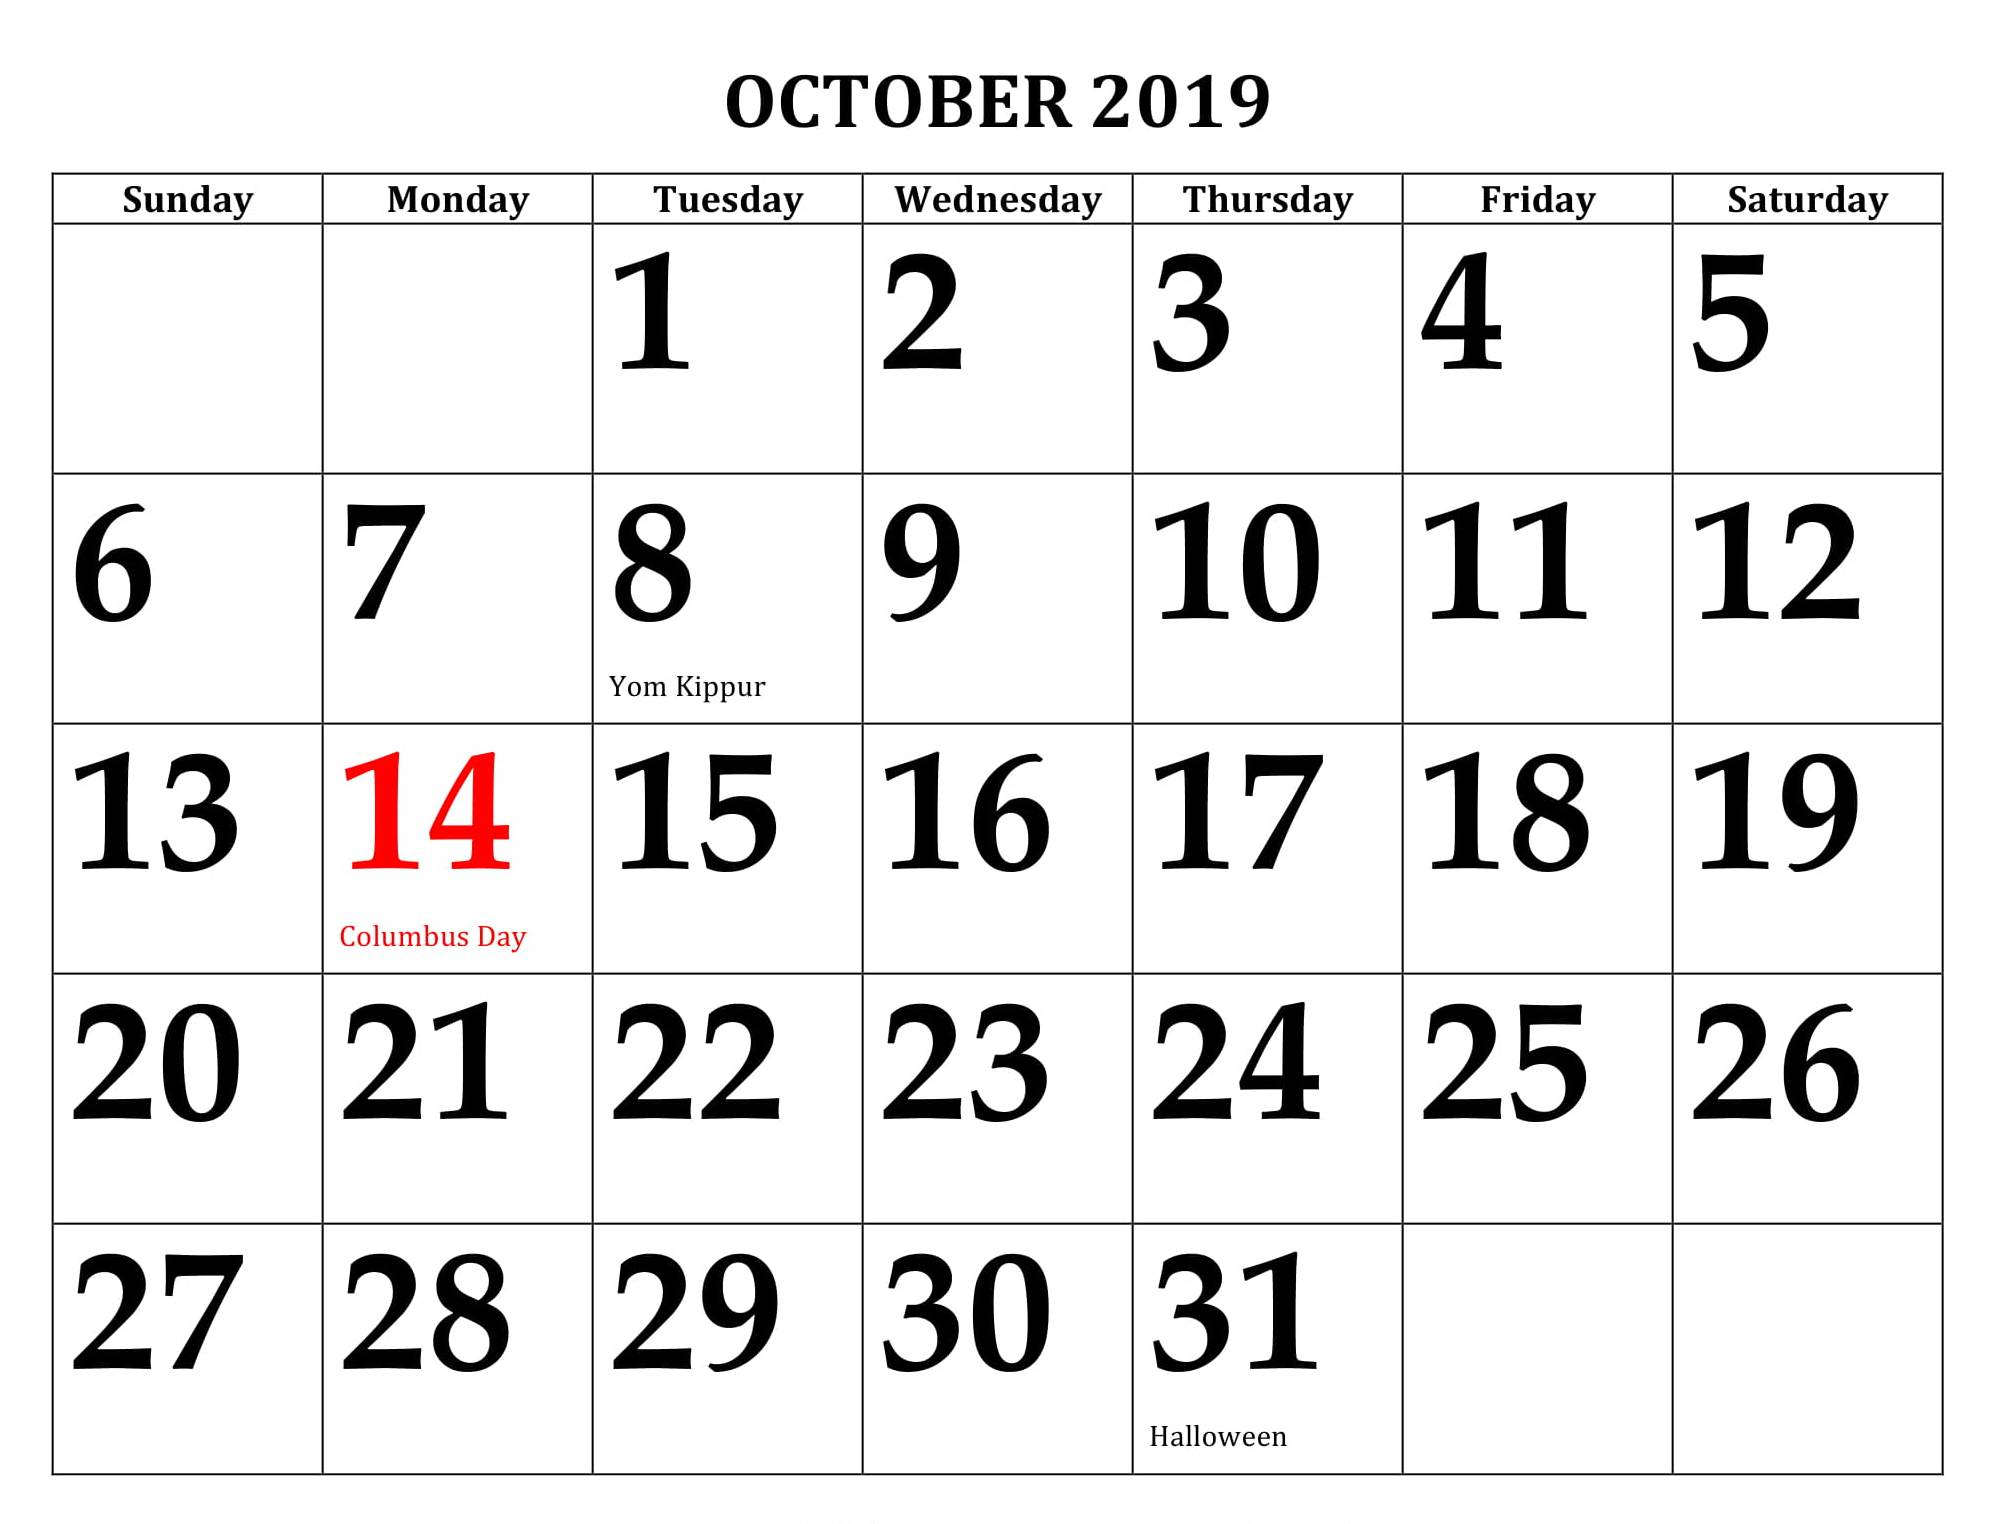 USA Holidays 2019 October Calendar